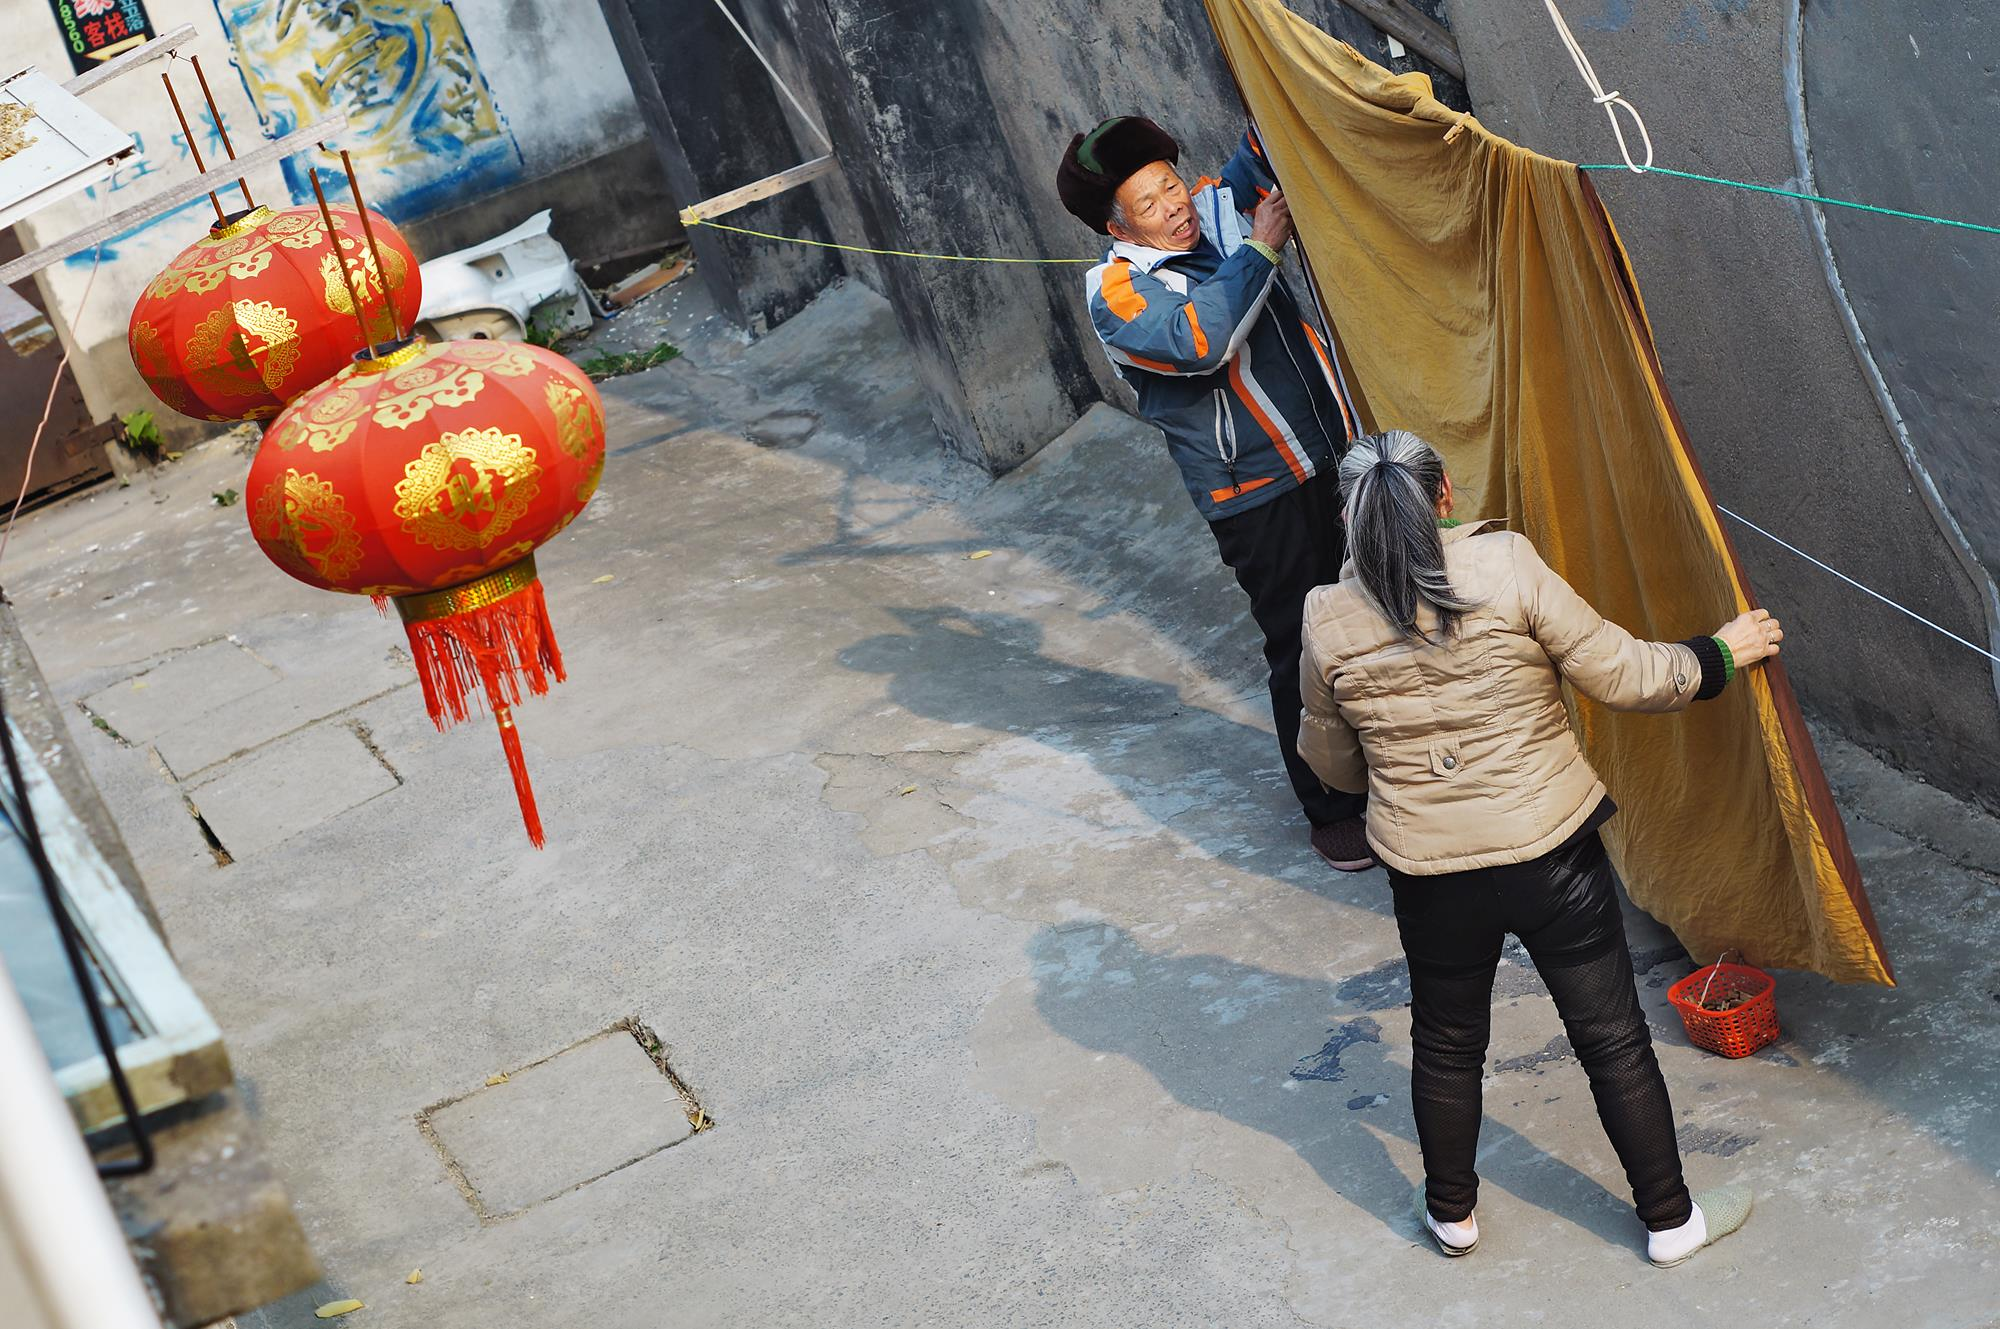 xitang local people